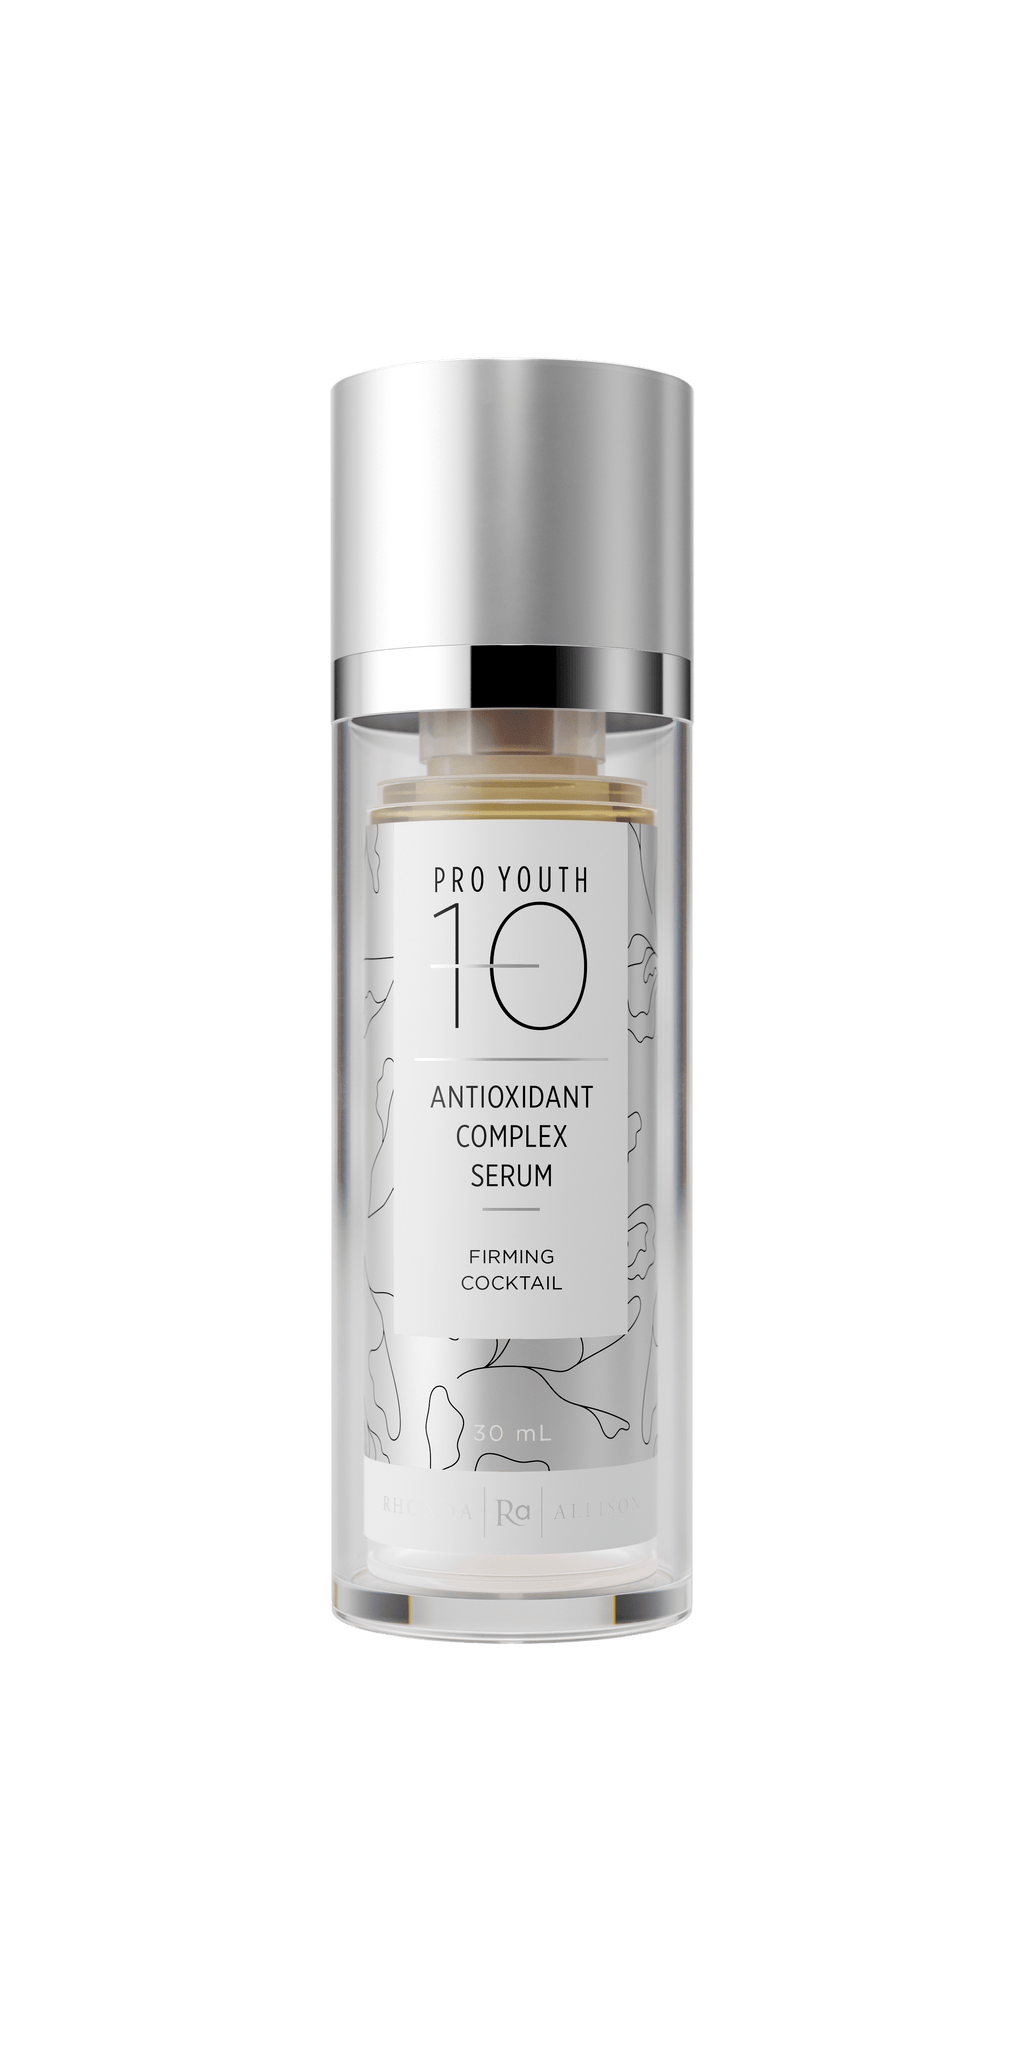 Antioxidant Complex Serum in a bottle